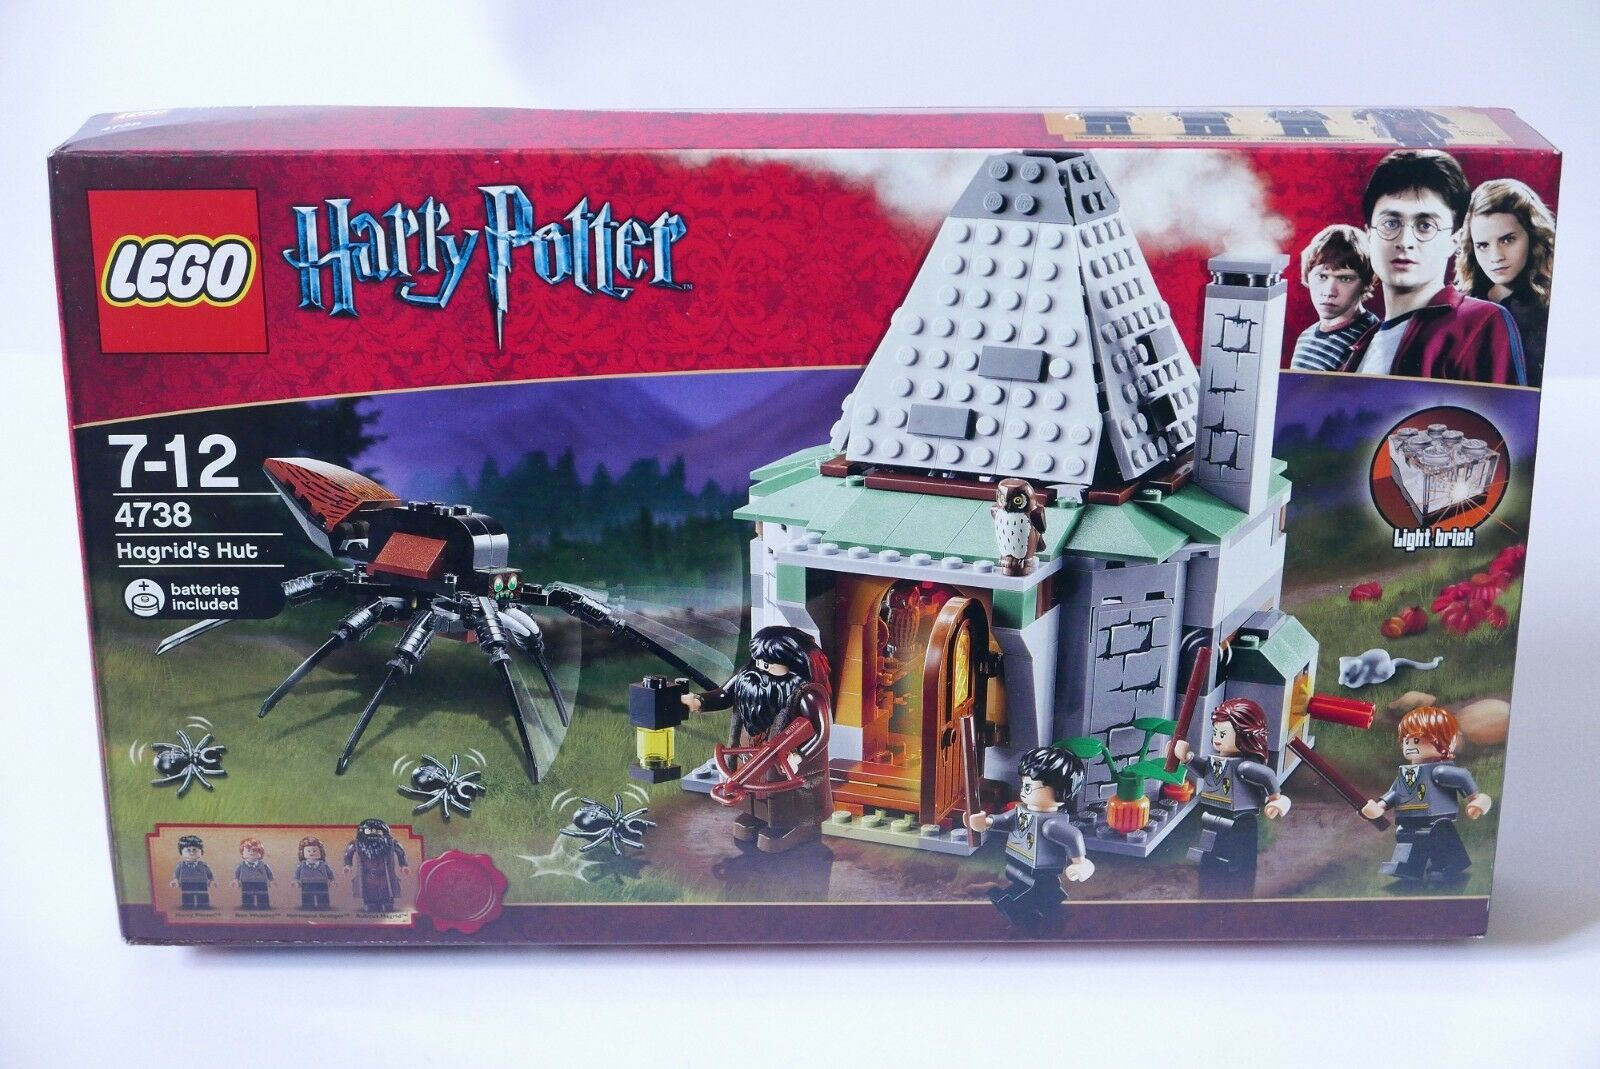 LEGO Harry Potter 4738 Hagrid's Hut (3rd edition) NEW Sealed RARE